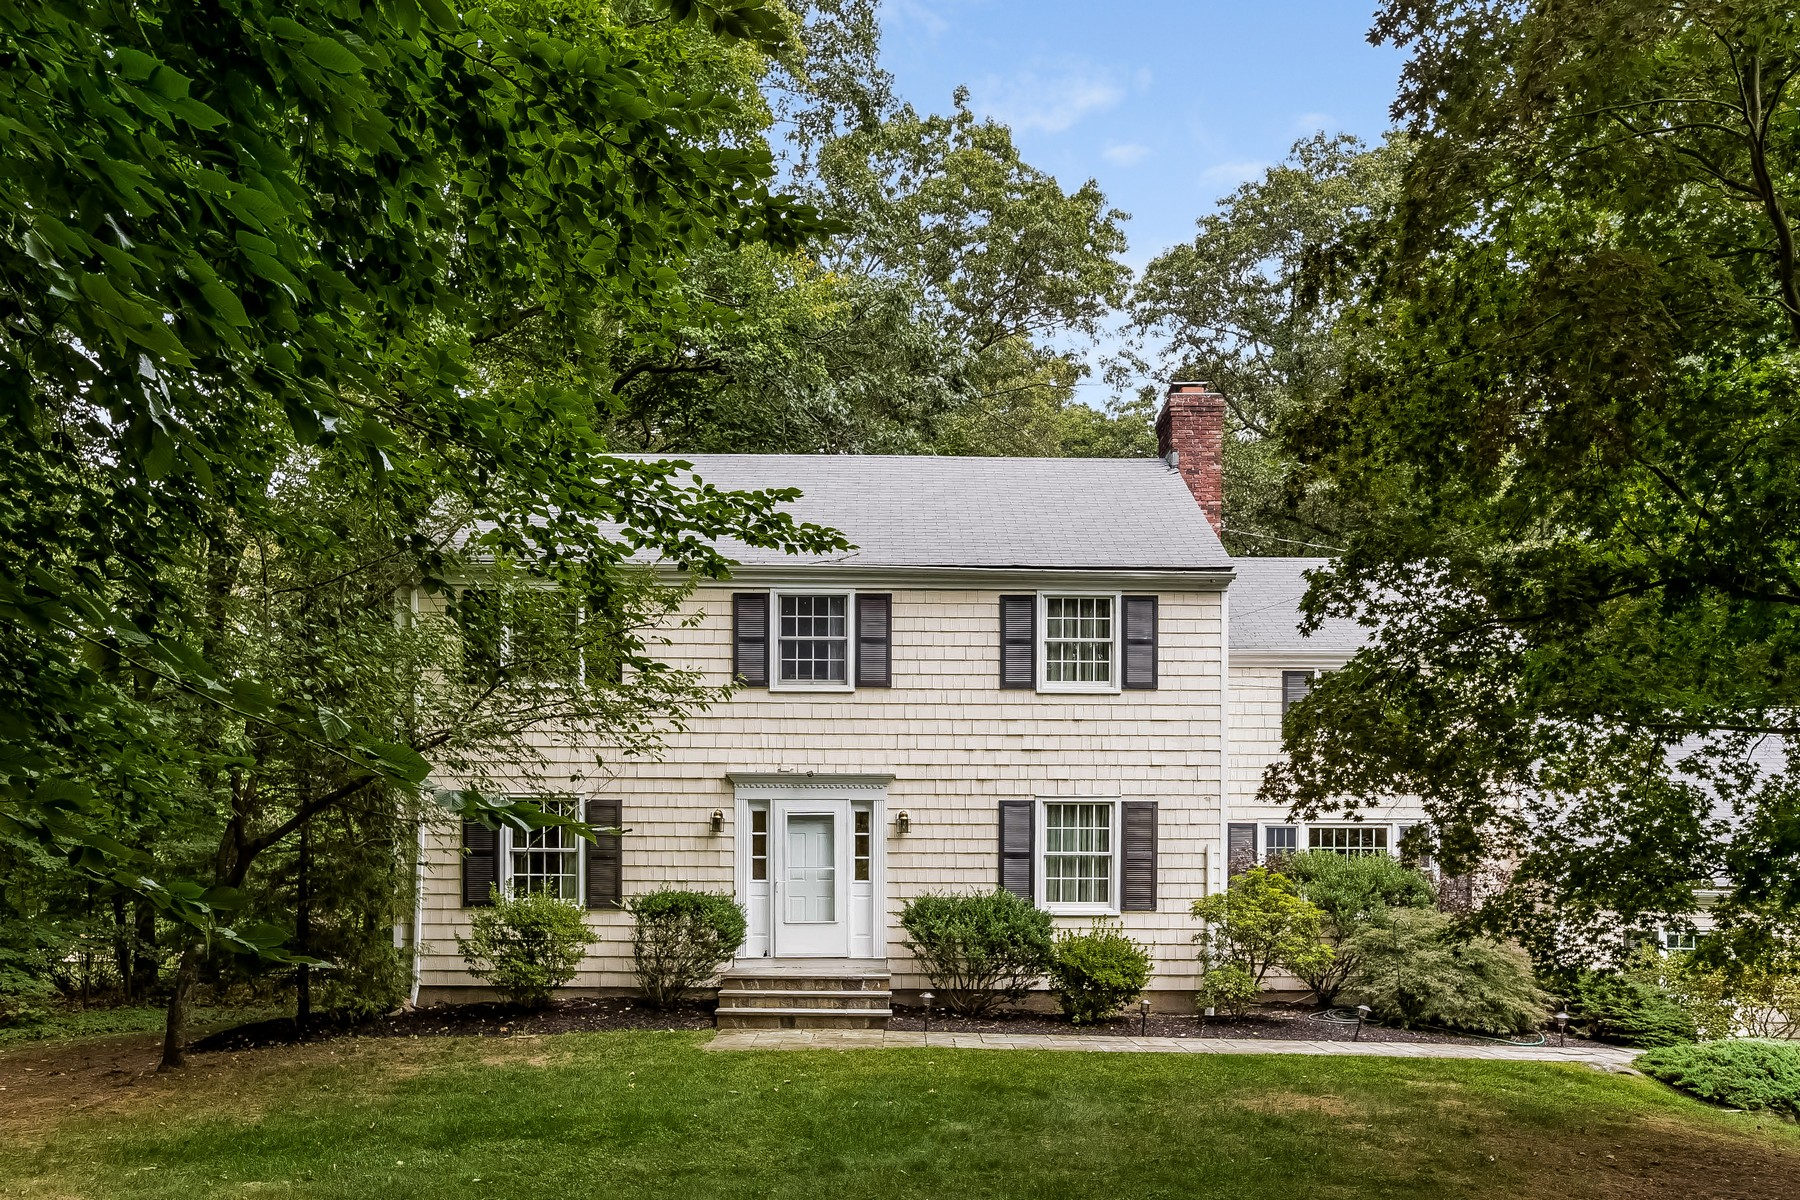 Vivienda unifamiliar por un Venta en Impeccable Colonial 119 Rising Ridge Road Ridgefield, Connecticut 06877 Estados Unidos